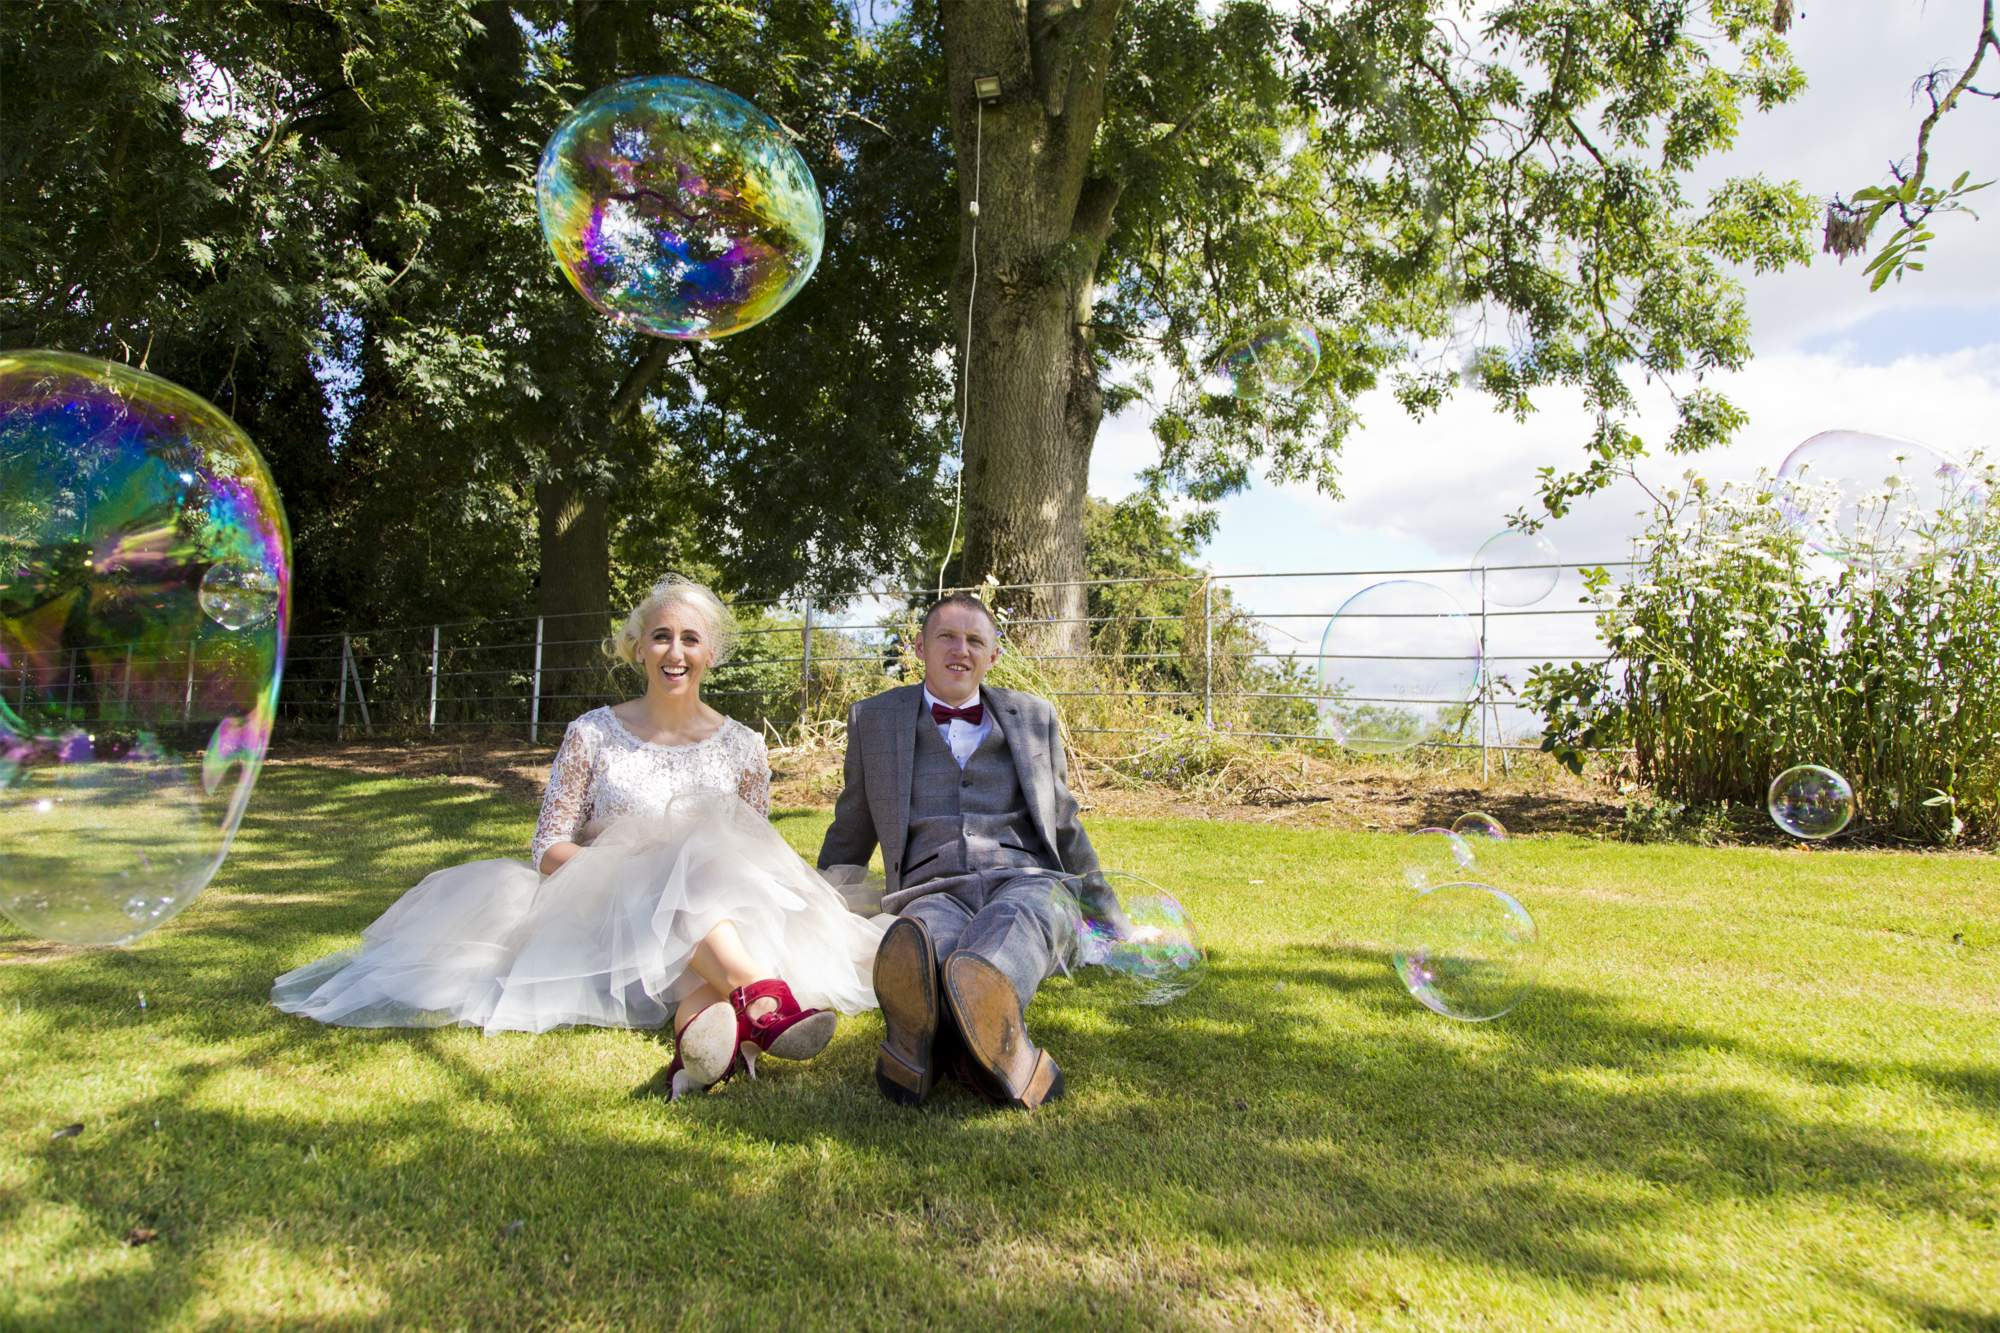 Wedding Photographer Portlaoise, Call 0861946237,  Wedding Photography Laois by Aoileann Nic Dhonnacha, Ireland